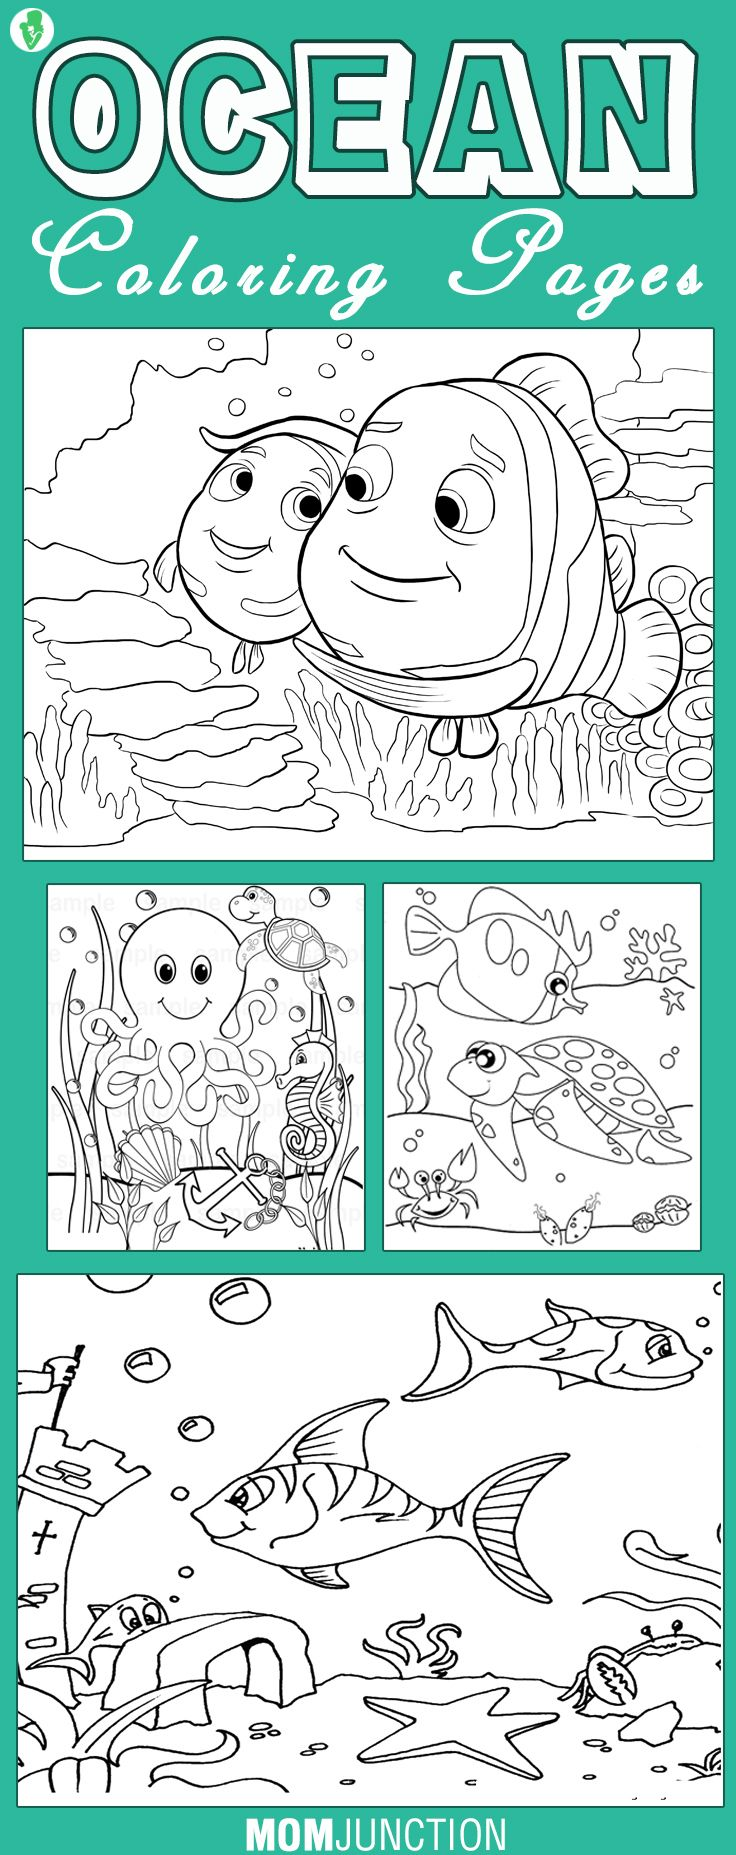 0cean coloring pages - 10 Best Ocean Coloring Pages For Your Little Ones